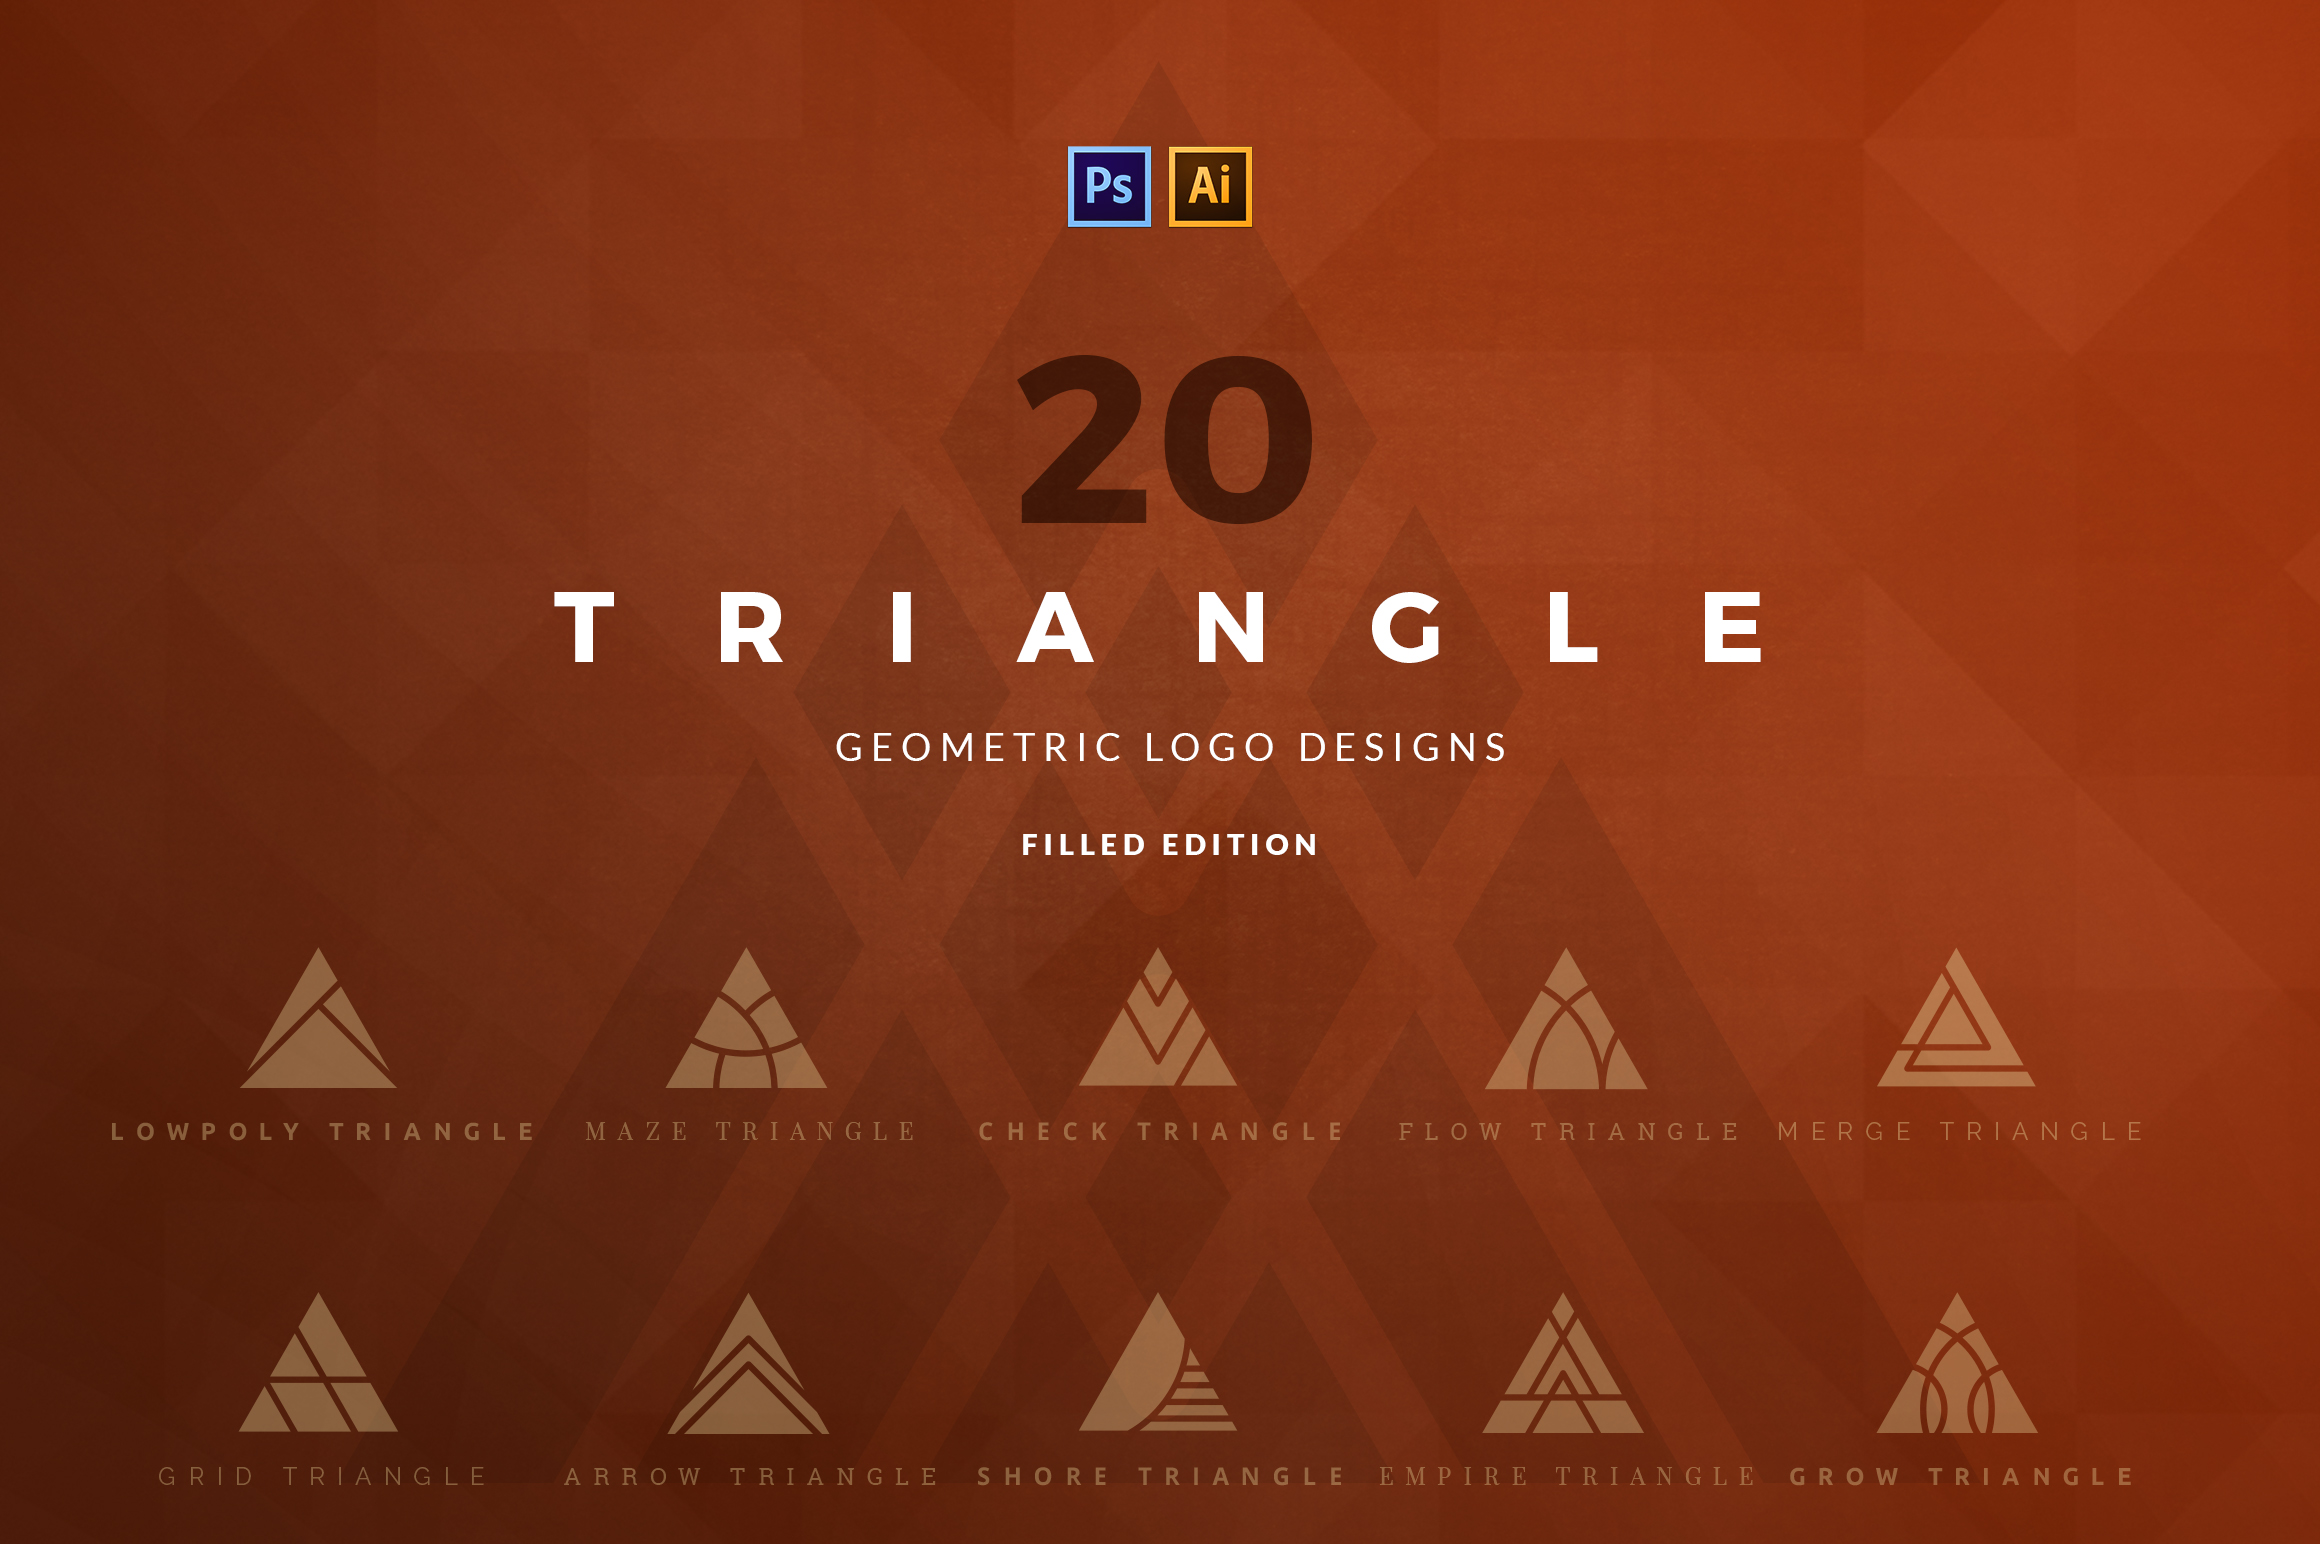 20 Triangle Logos - Filled Edition Gráfico Por vladfedotovv